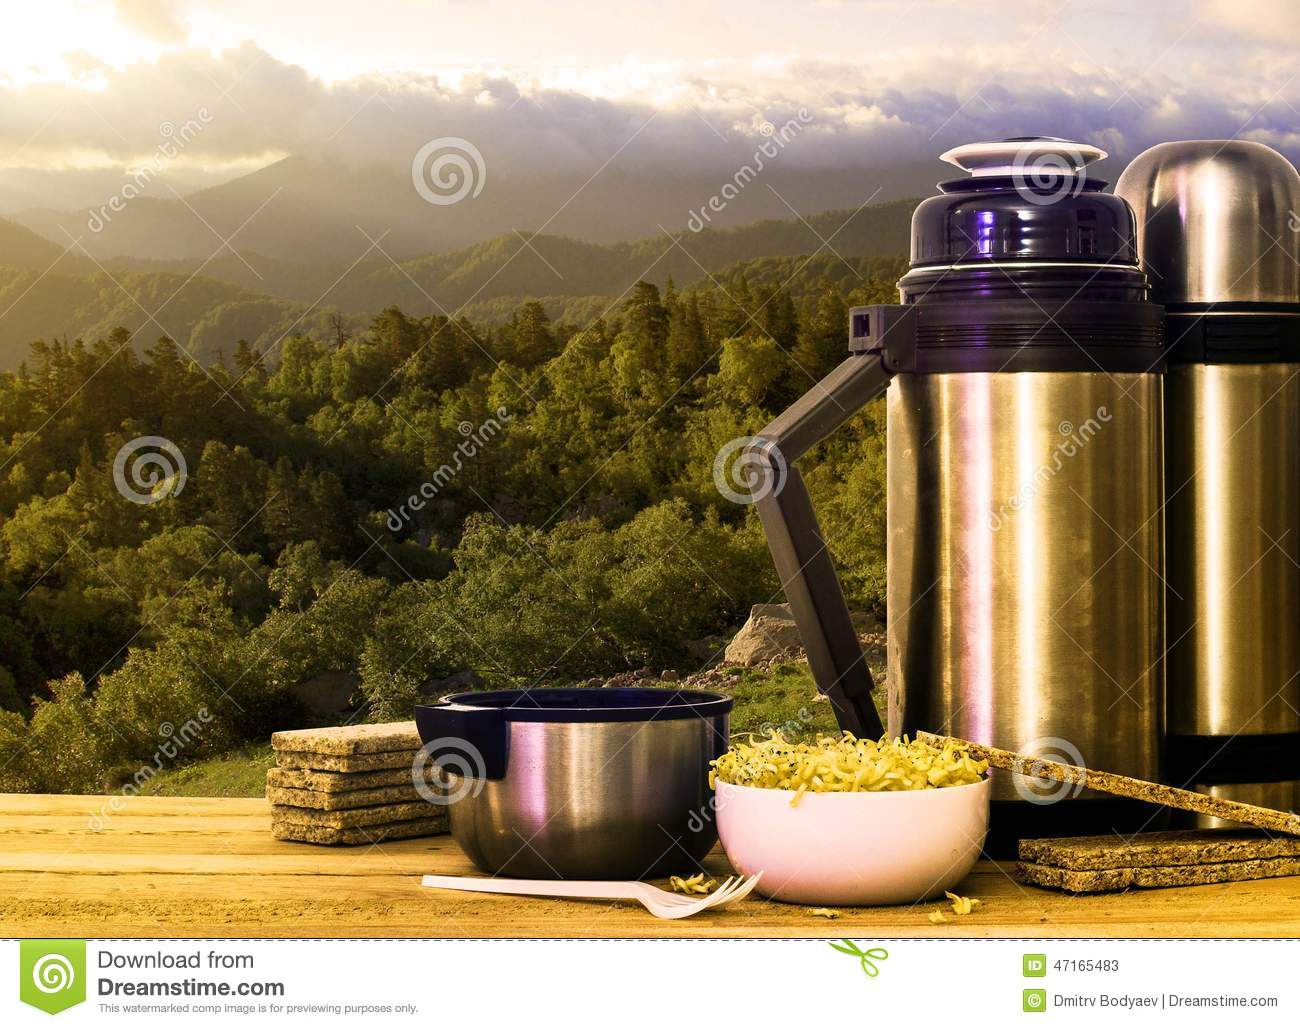 Thermos and instant noodles in the mountains